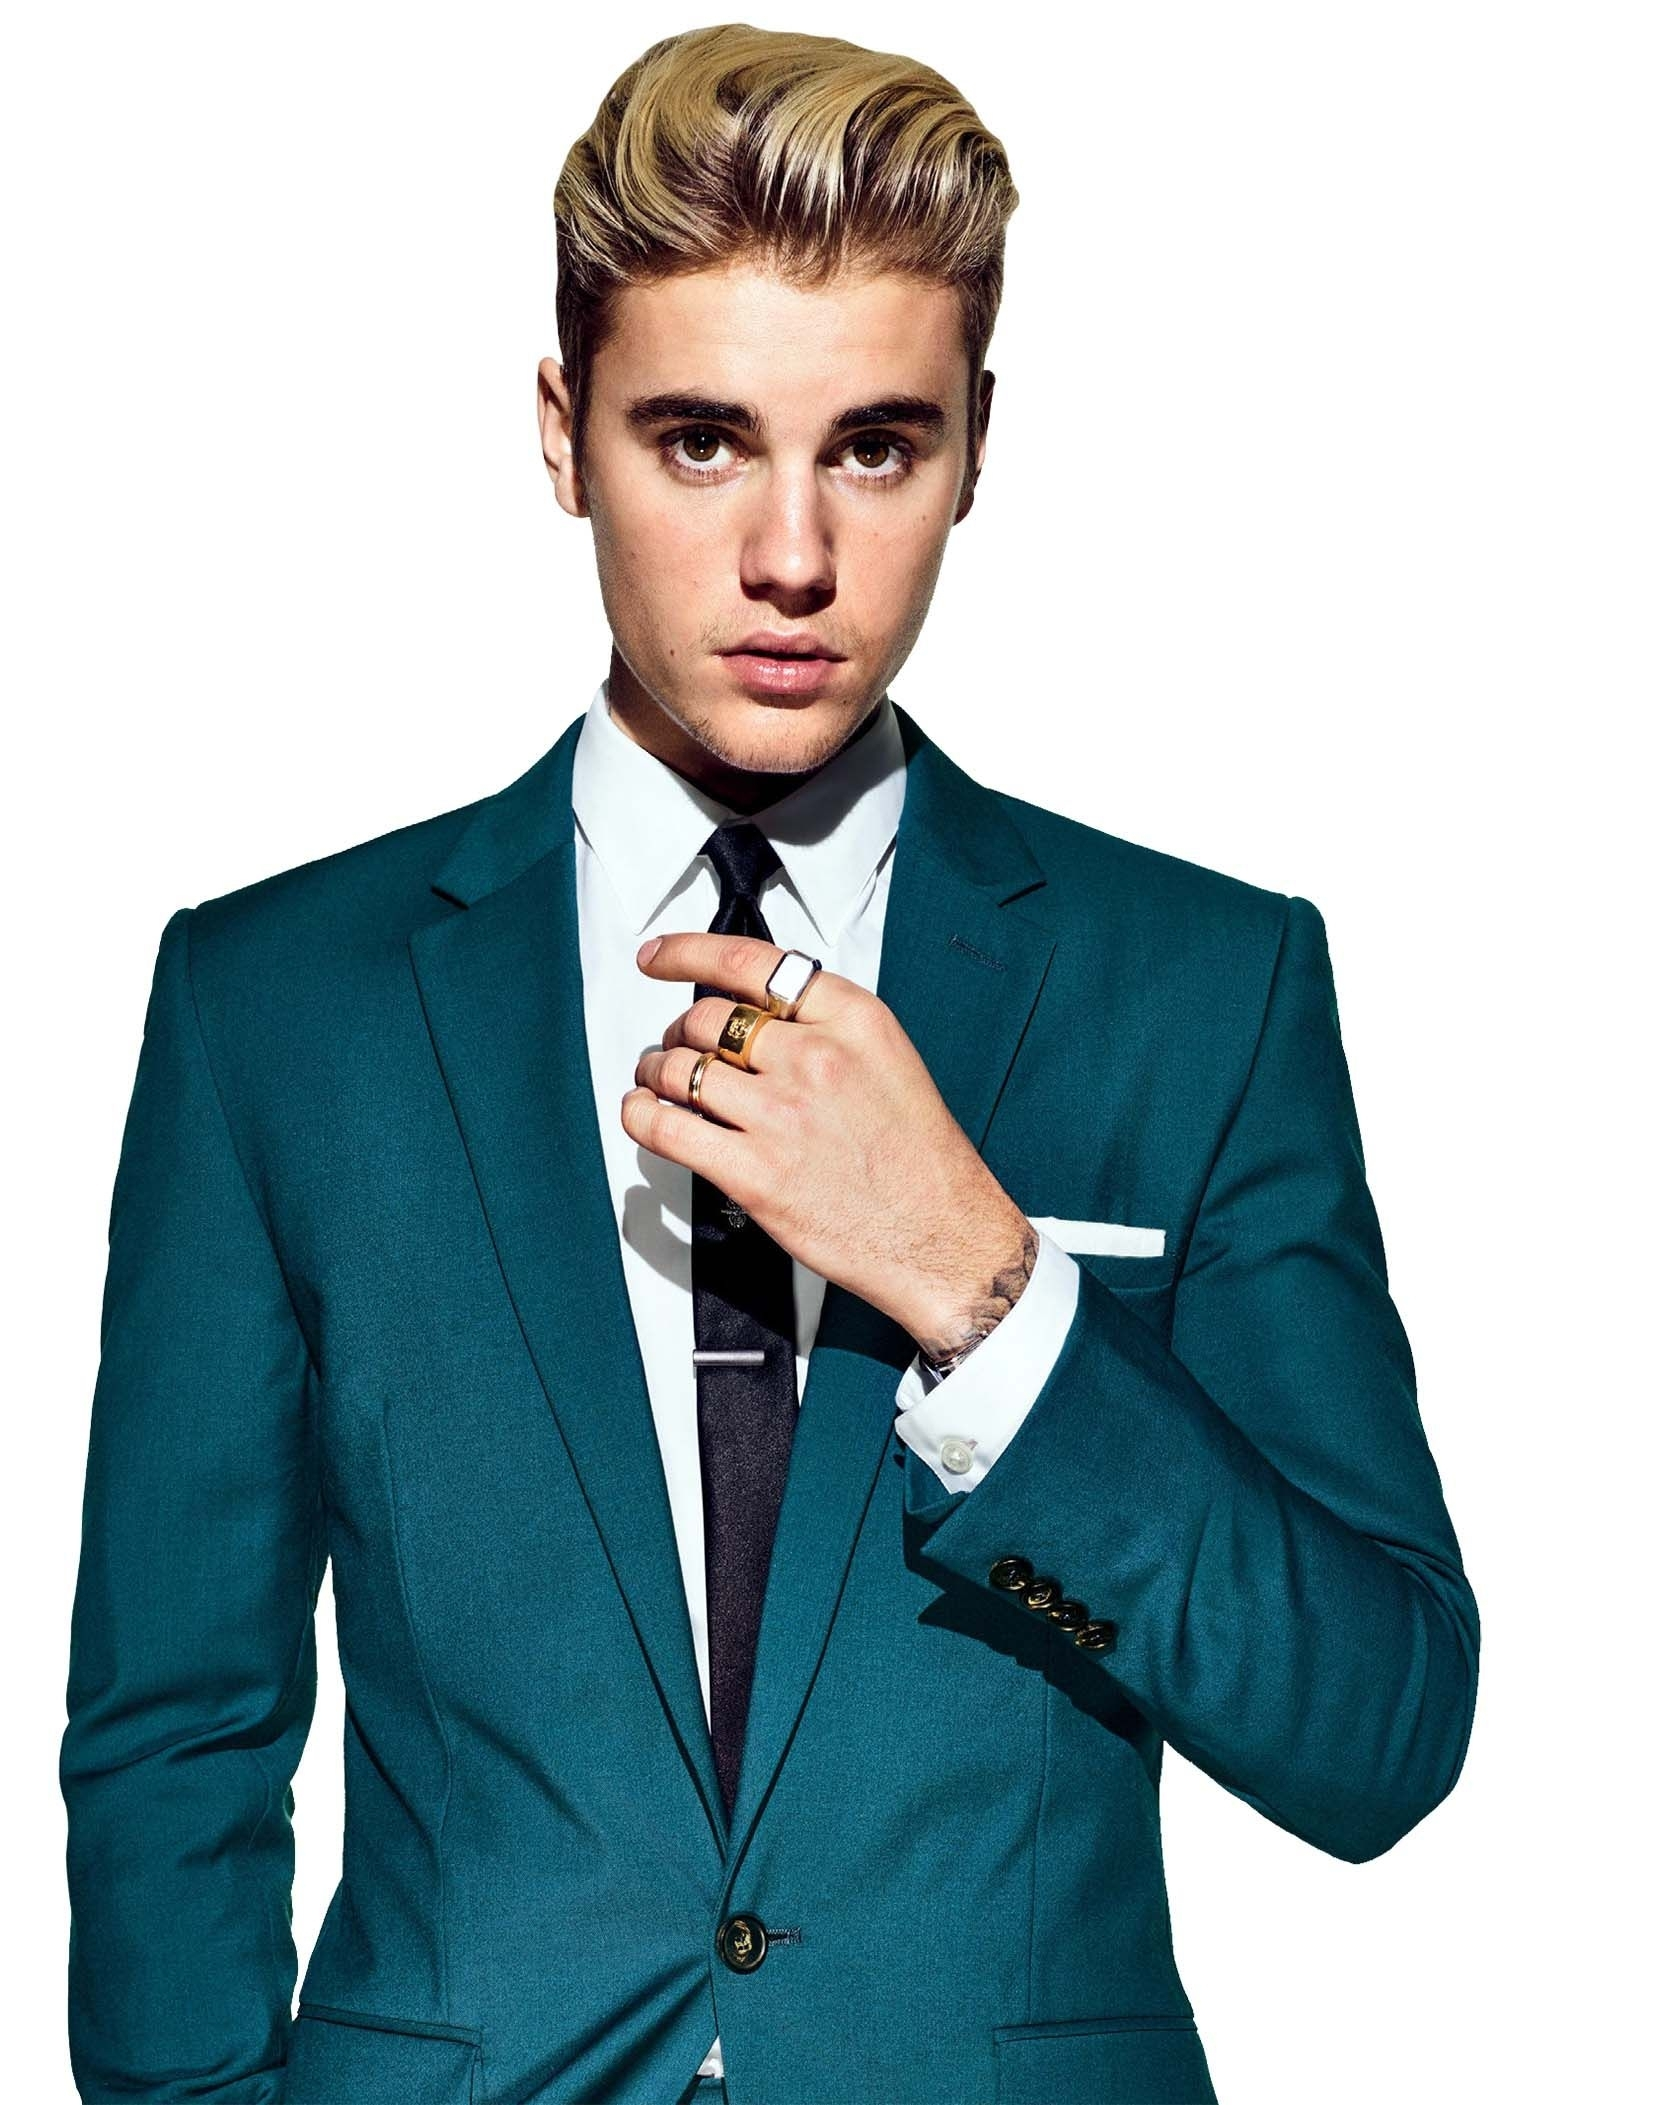 justin-bieber-hd-wallpapers (1656×2105) | justin bieber